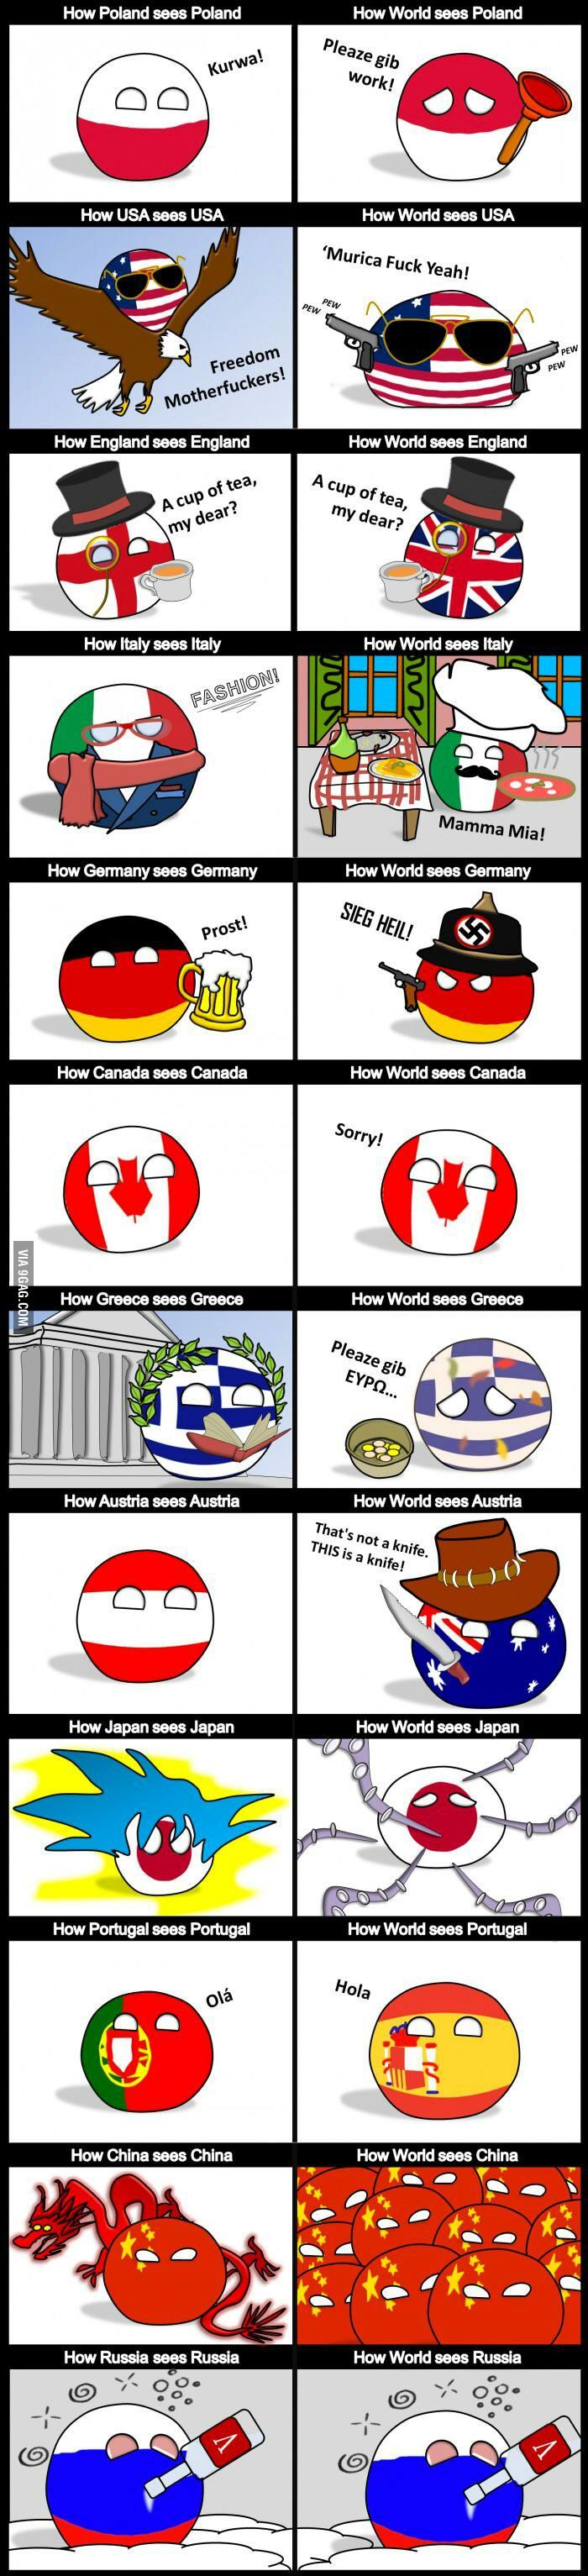 How countries think they are compared to how the world the see them.